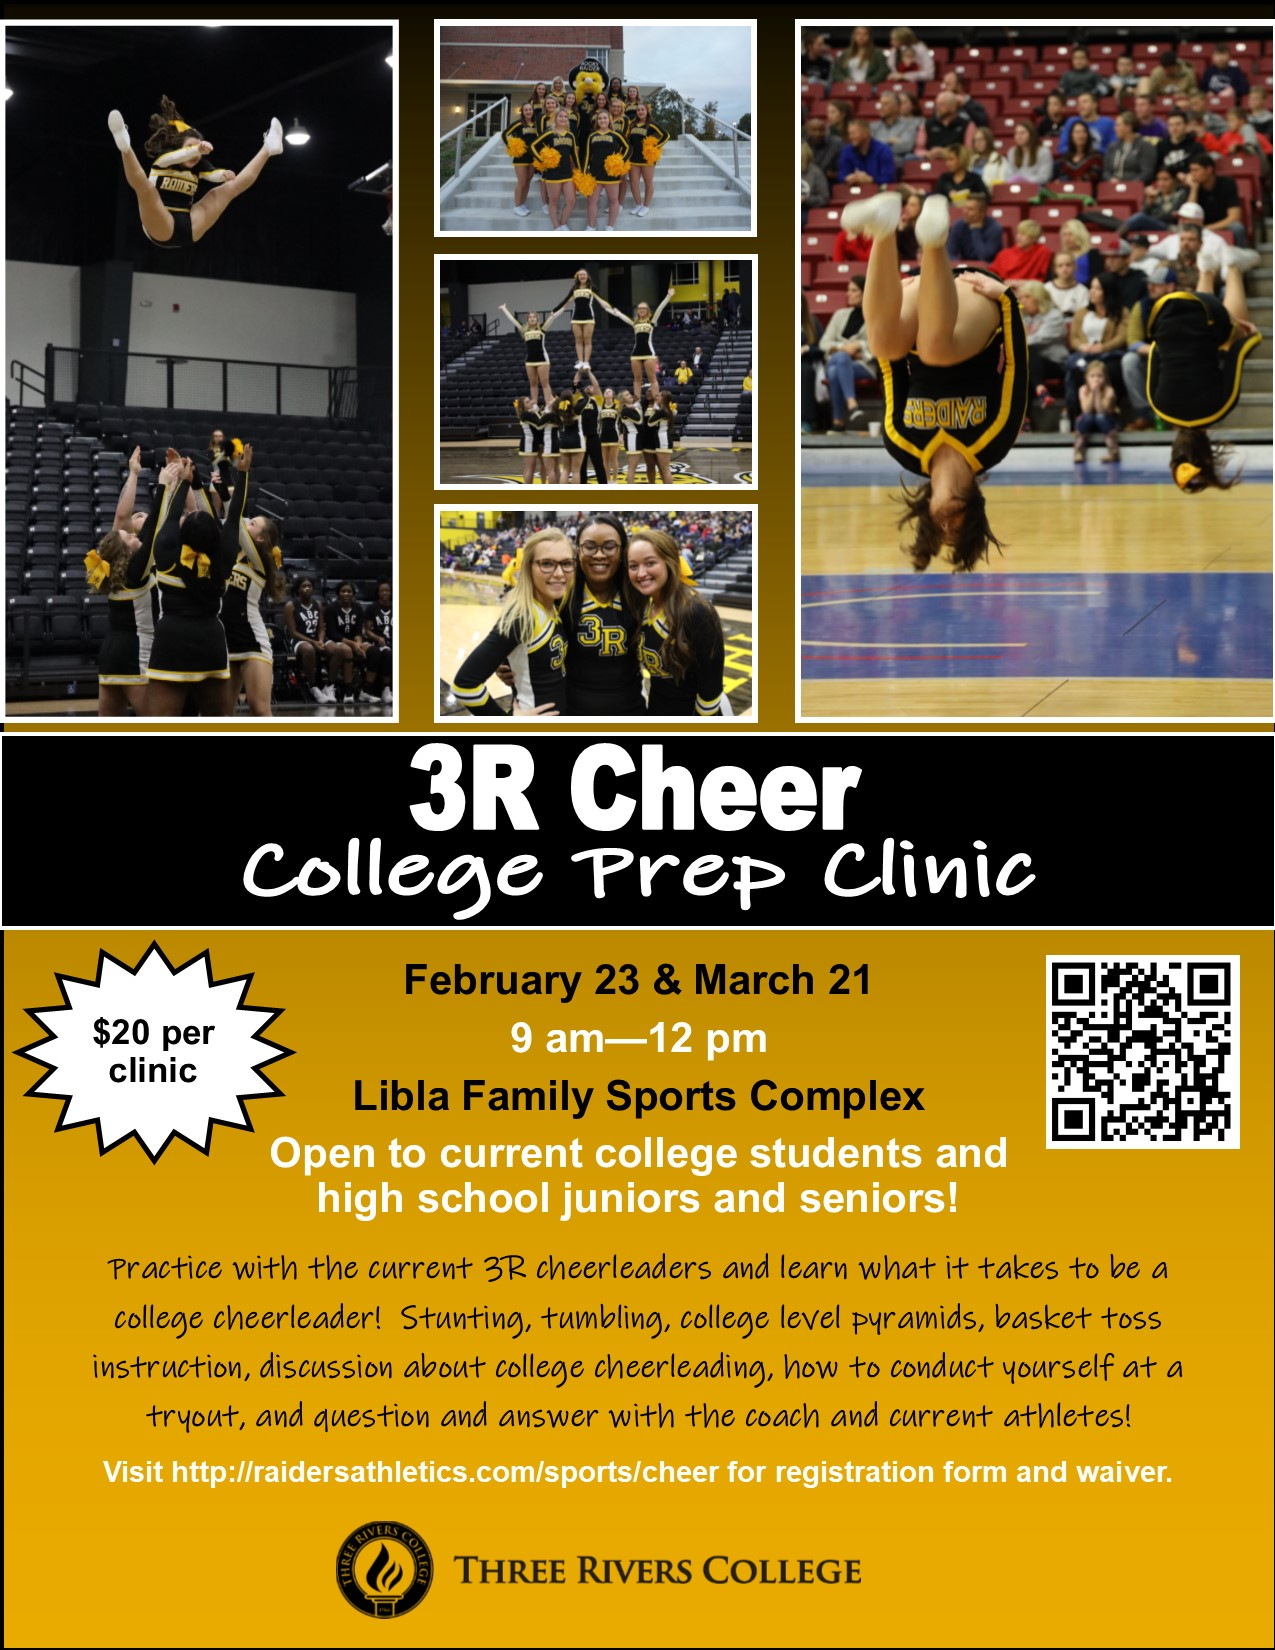 Cheer to hold College Prep Clinic